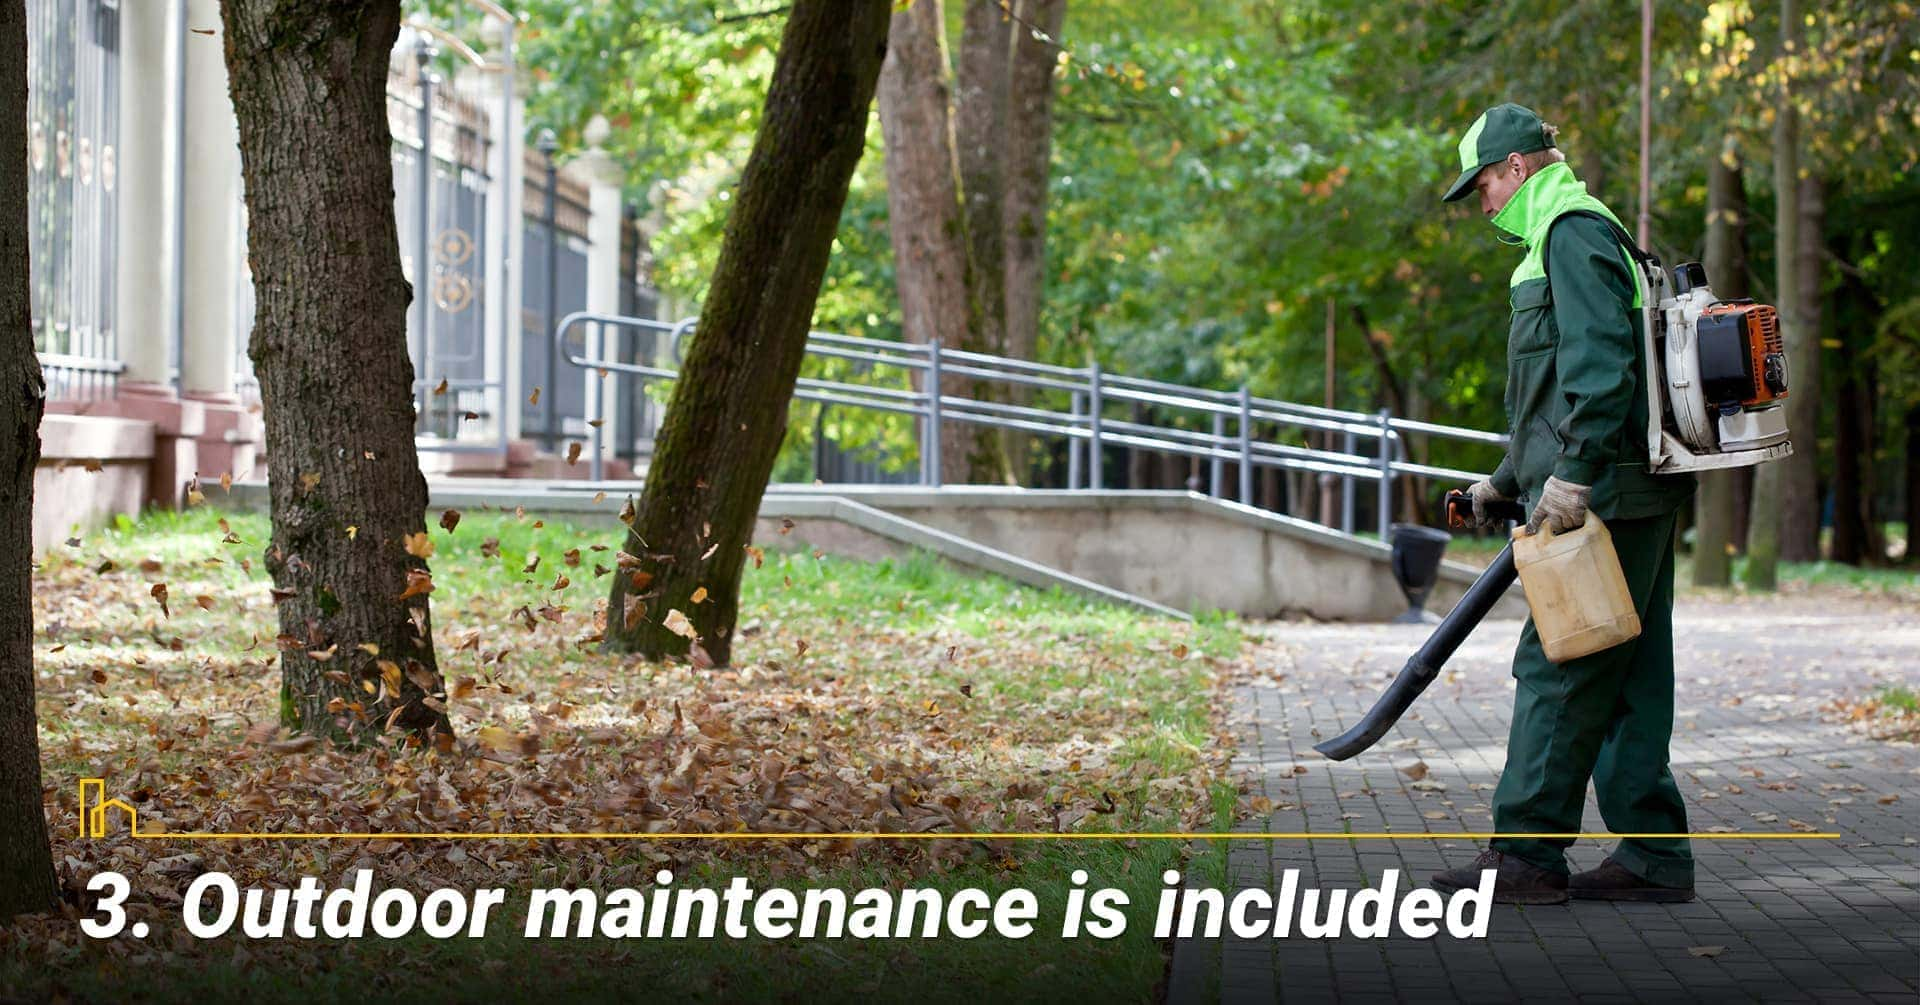 Outdoor maintenance is included